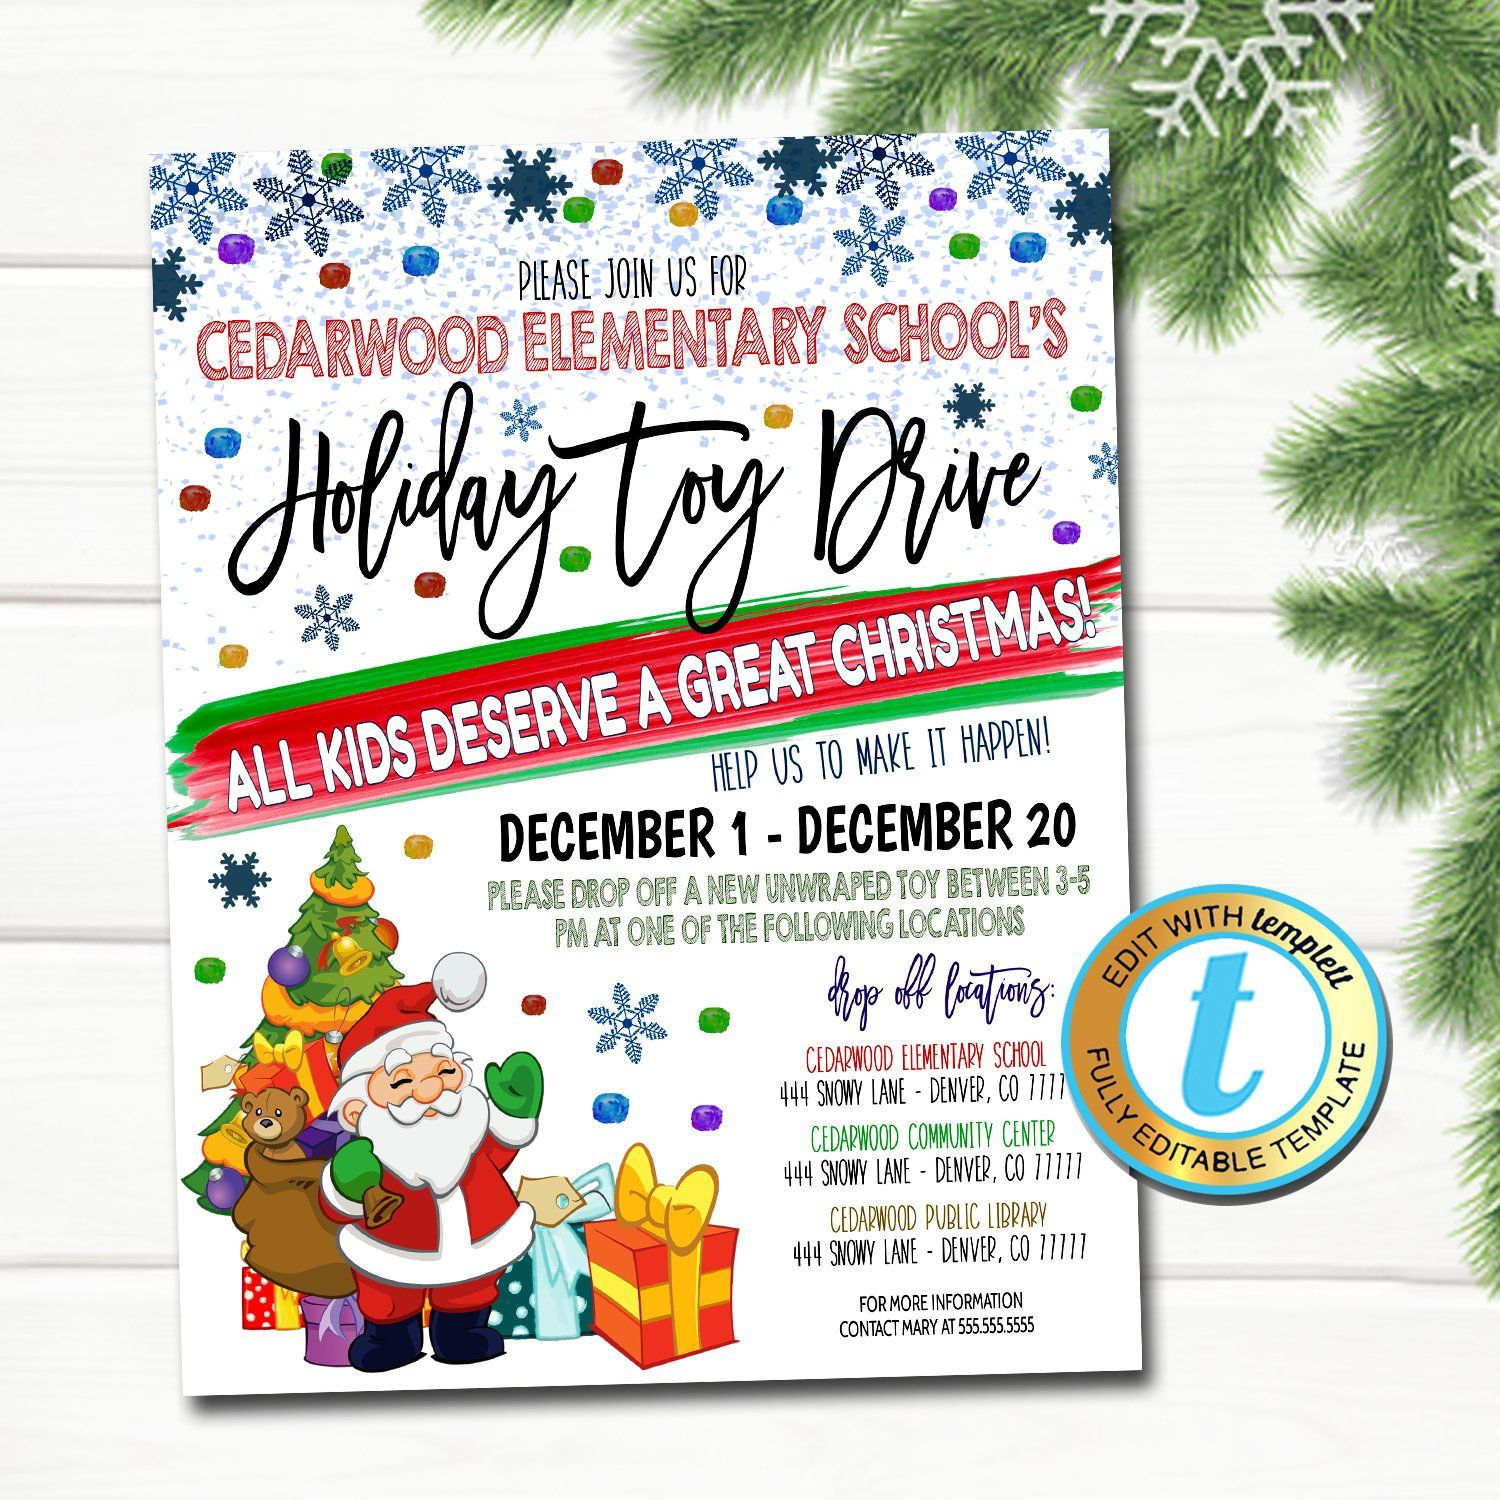 Holiday Toy Drive Event Flyer Printable Template In 2021 Toy Drive Christmas Toy Drive Flyer Christmas School